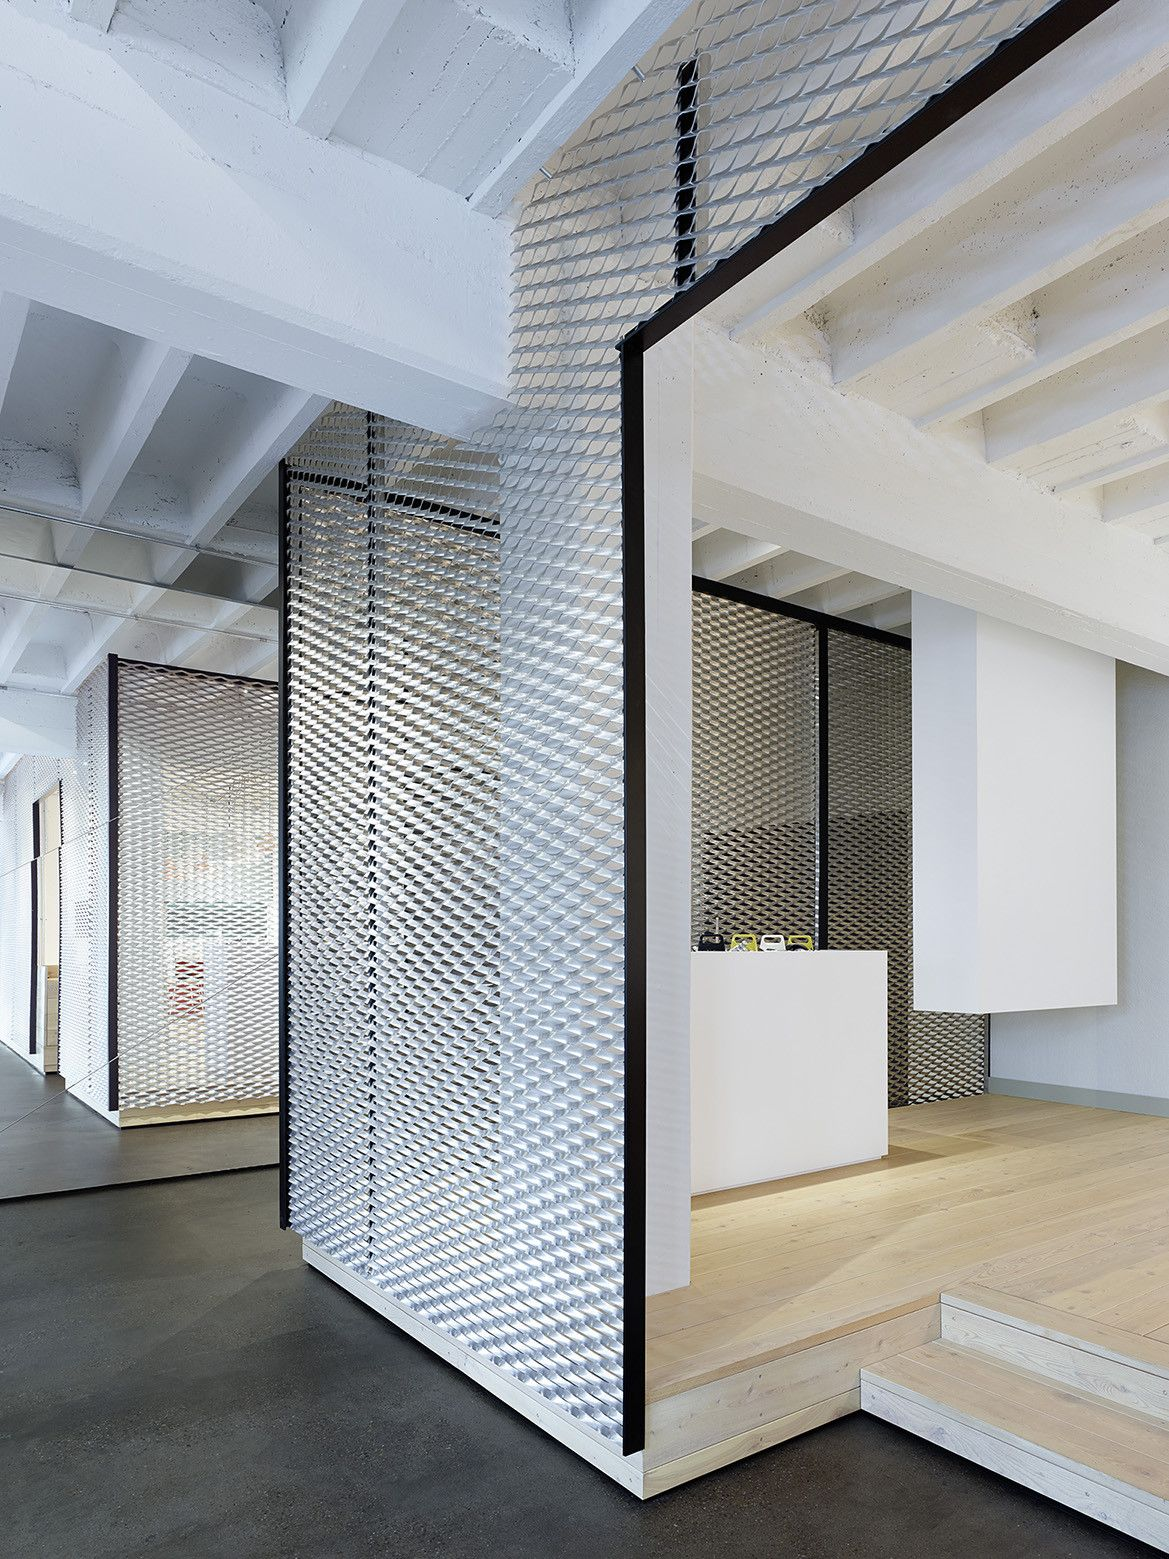 Design Studio Stuttgart Gallery Of Movet Office Loft Interior Design Studio